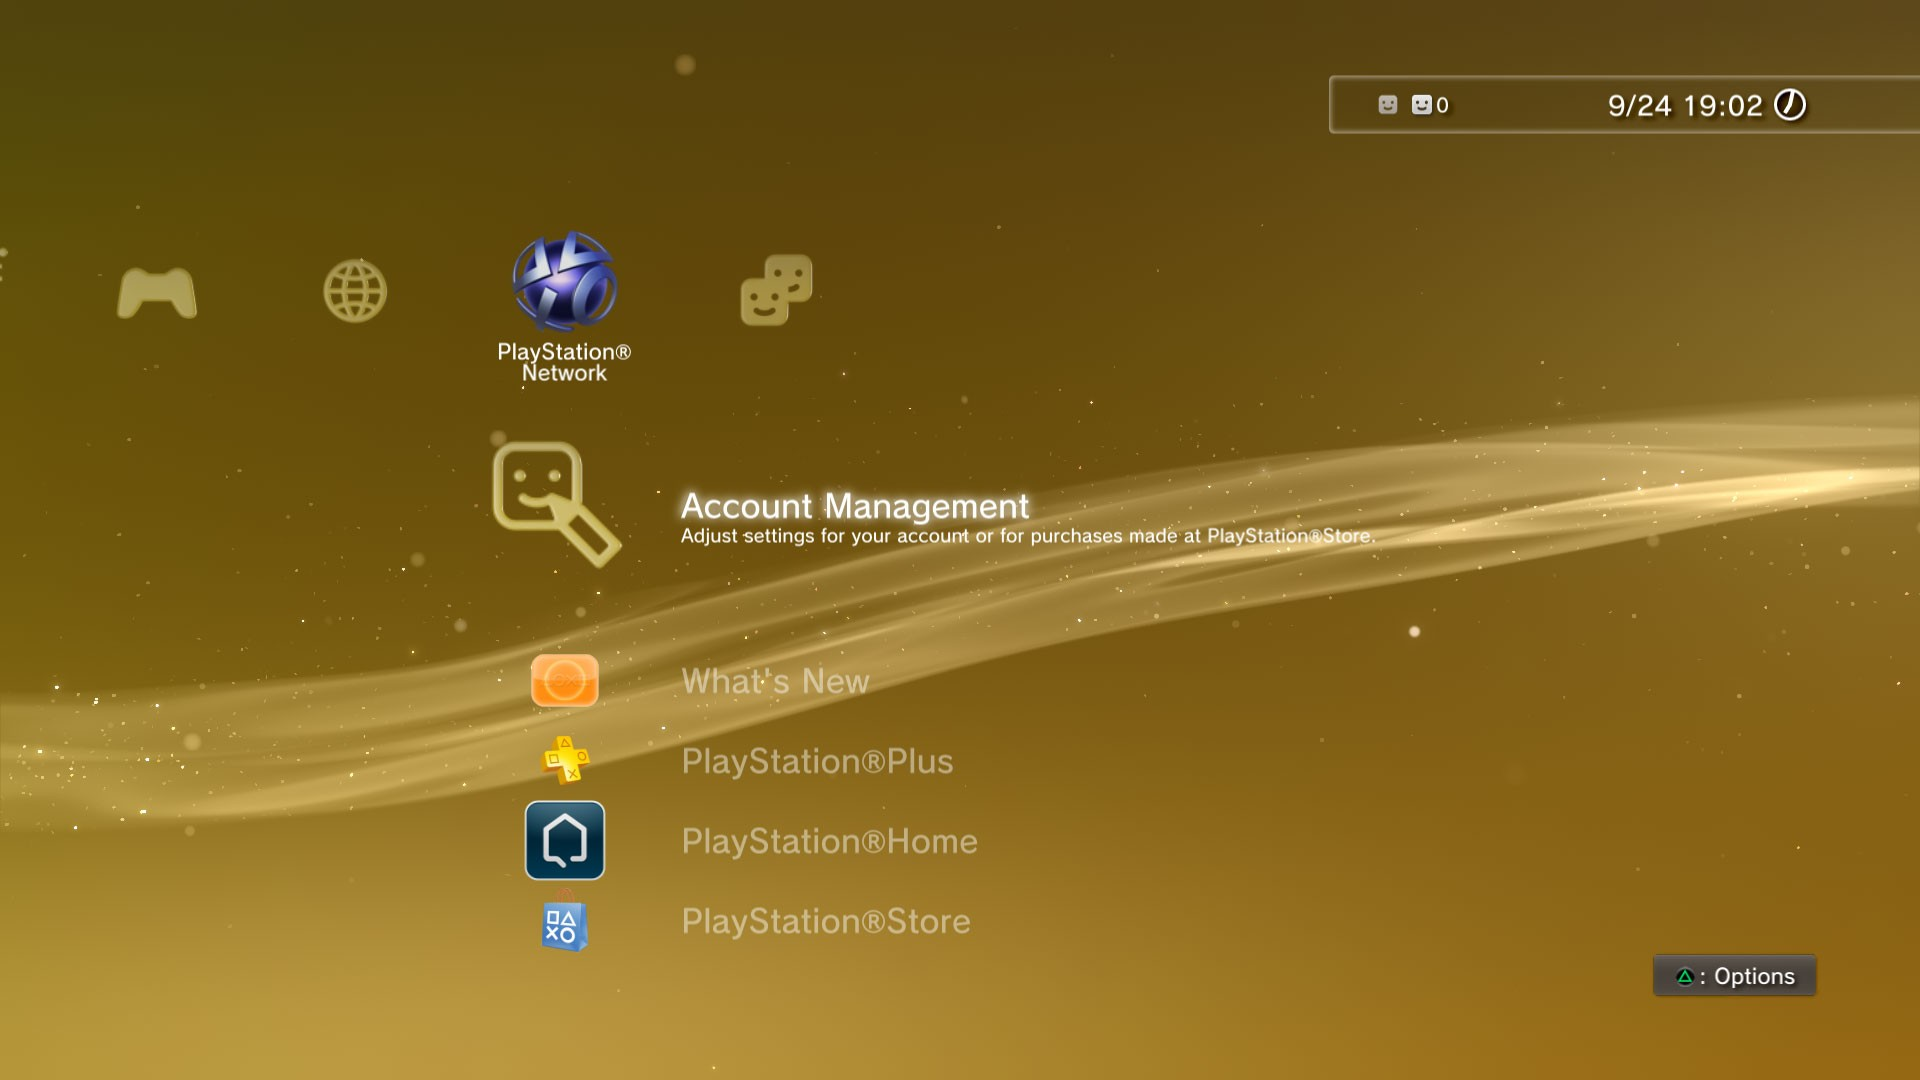 Sony: PSN Names Set for Now, Situation Might Change in the